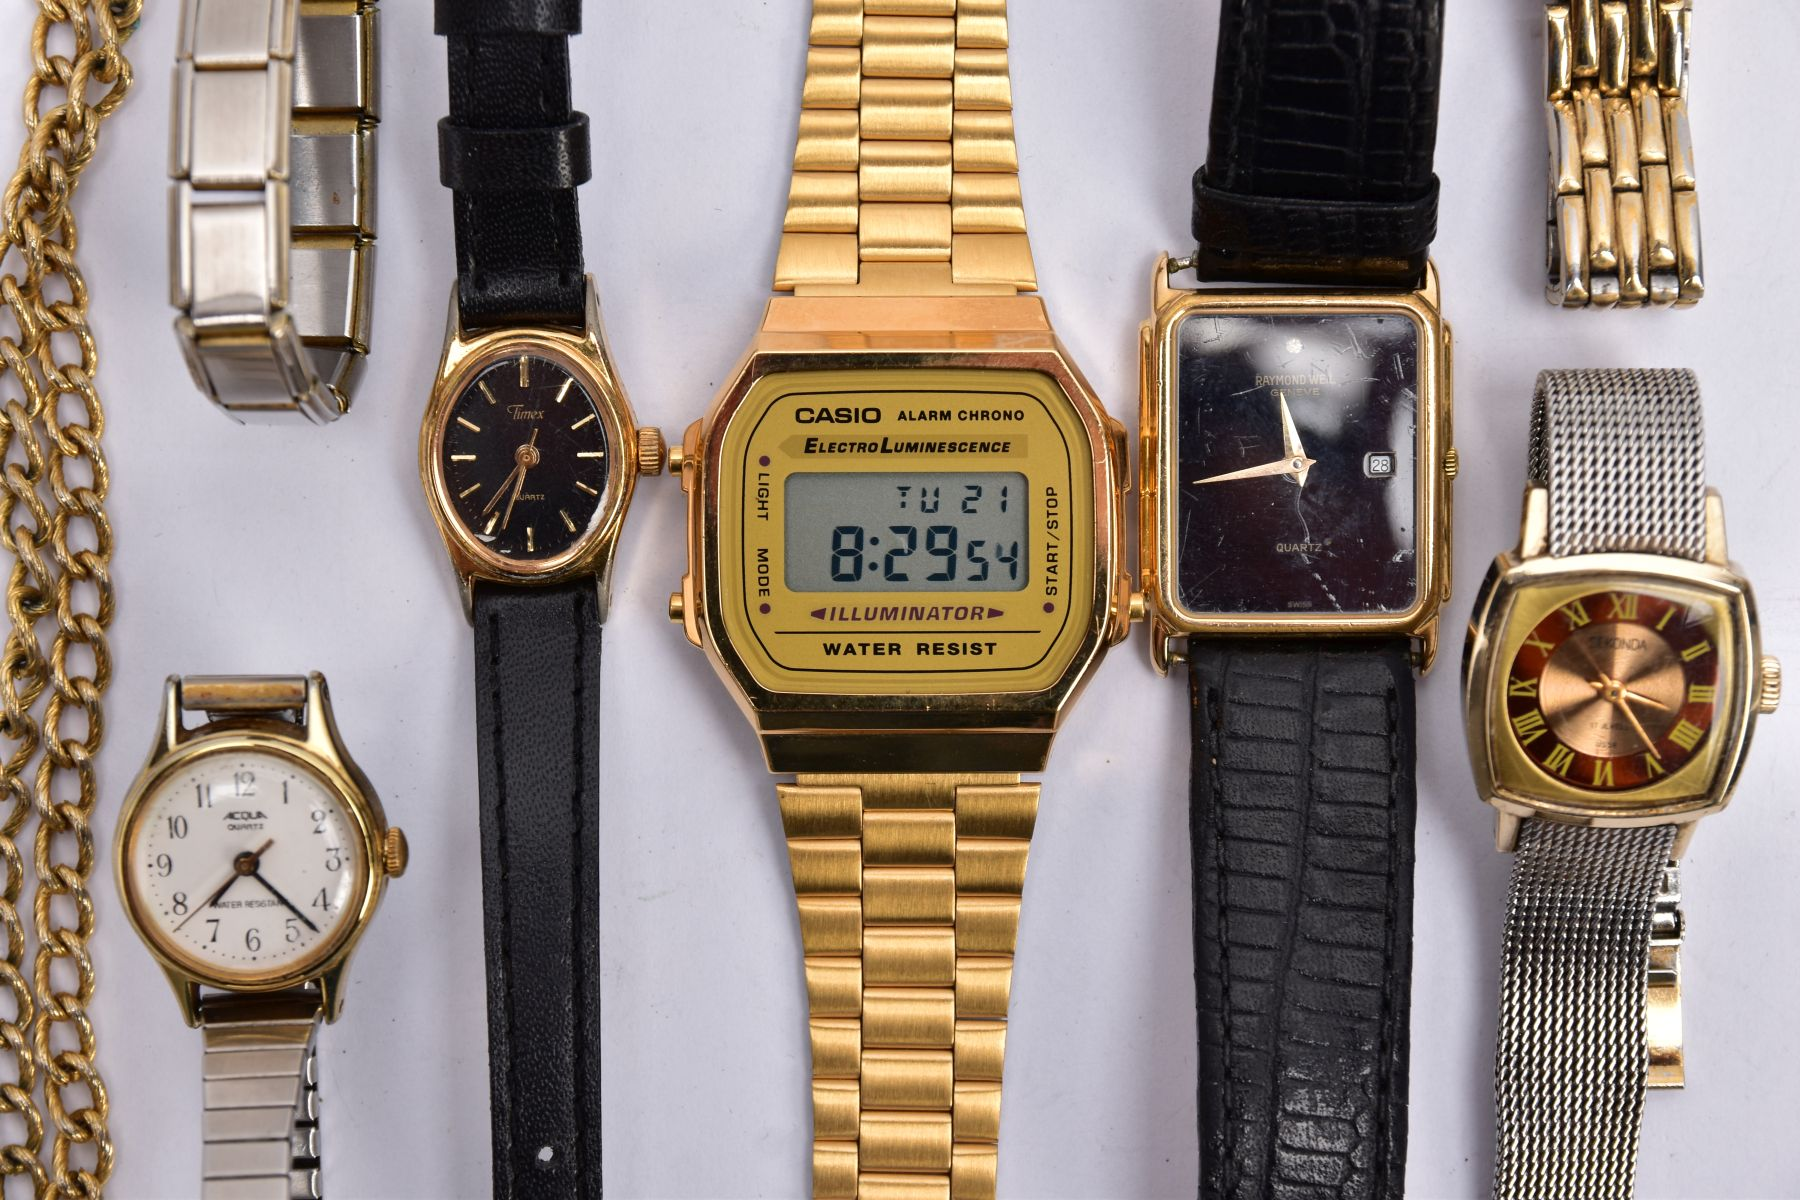 A BAG OF ASSORTED WRISTWATCHES, to include a 'Casio alarm chrono, electro luminescence' - Image 2 of 5